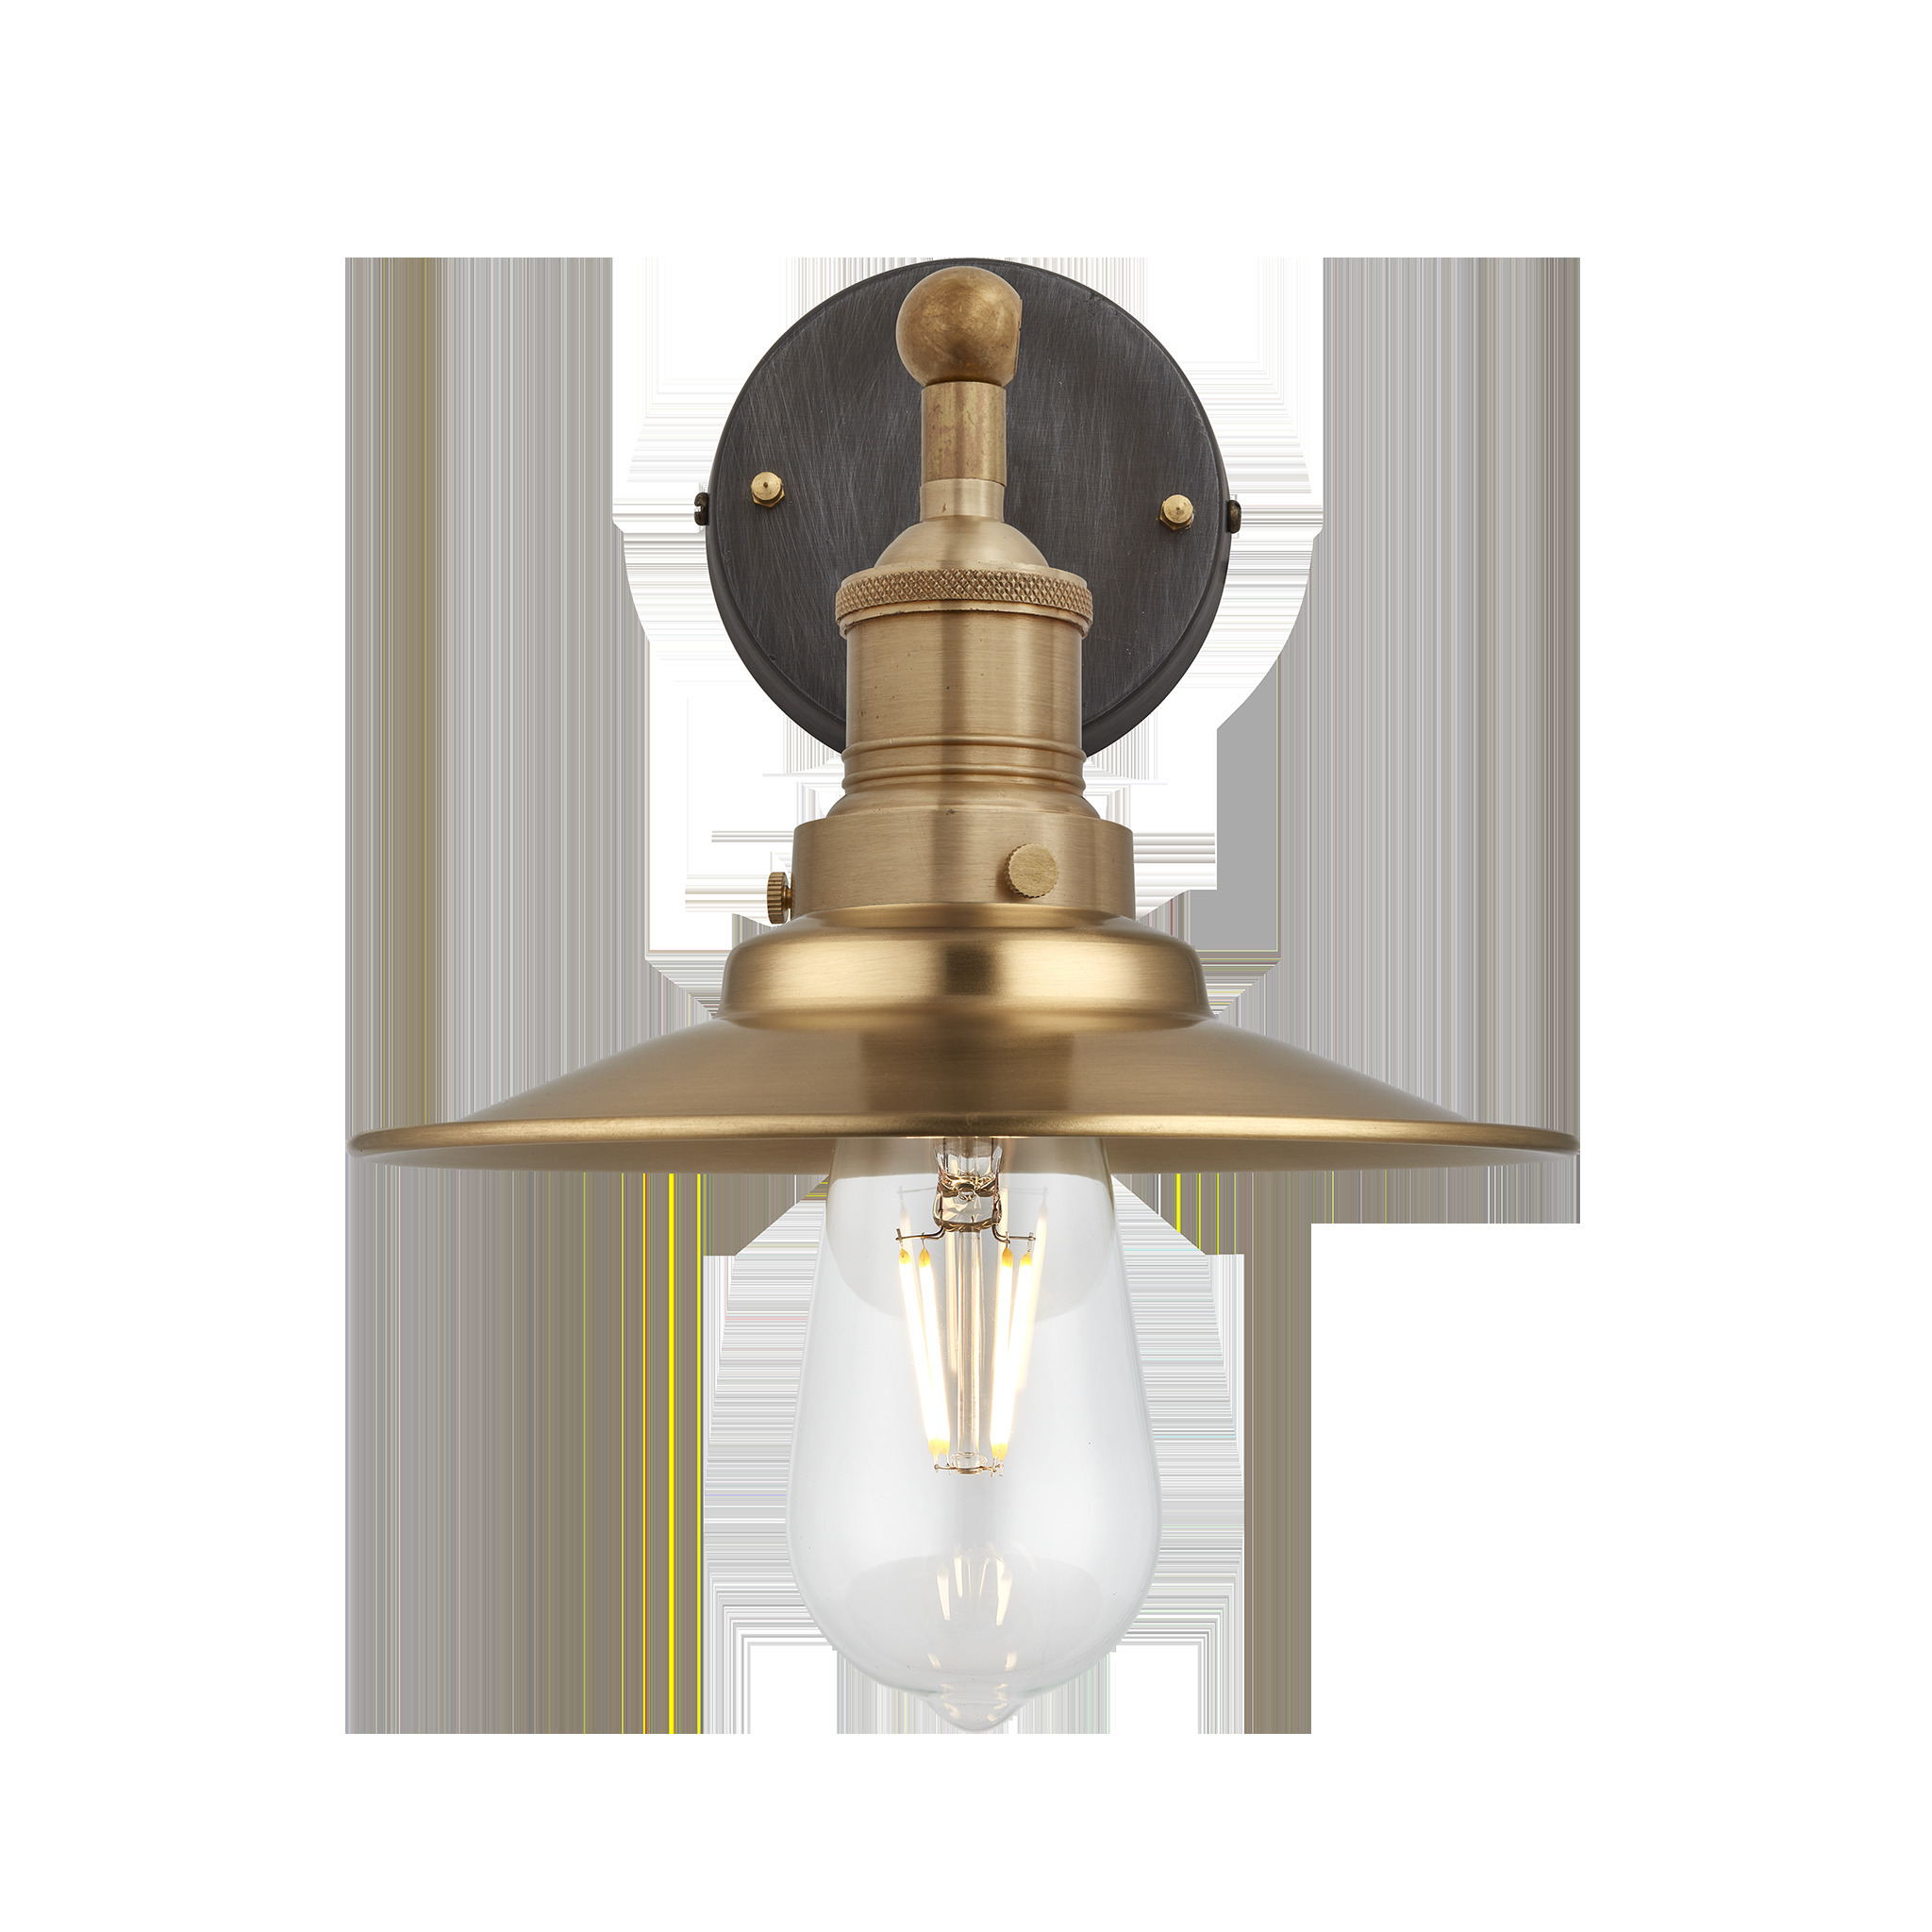 Brooklyn vintage antique sconce wall lamp flat shade antique brass 8 inch